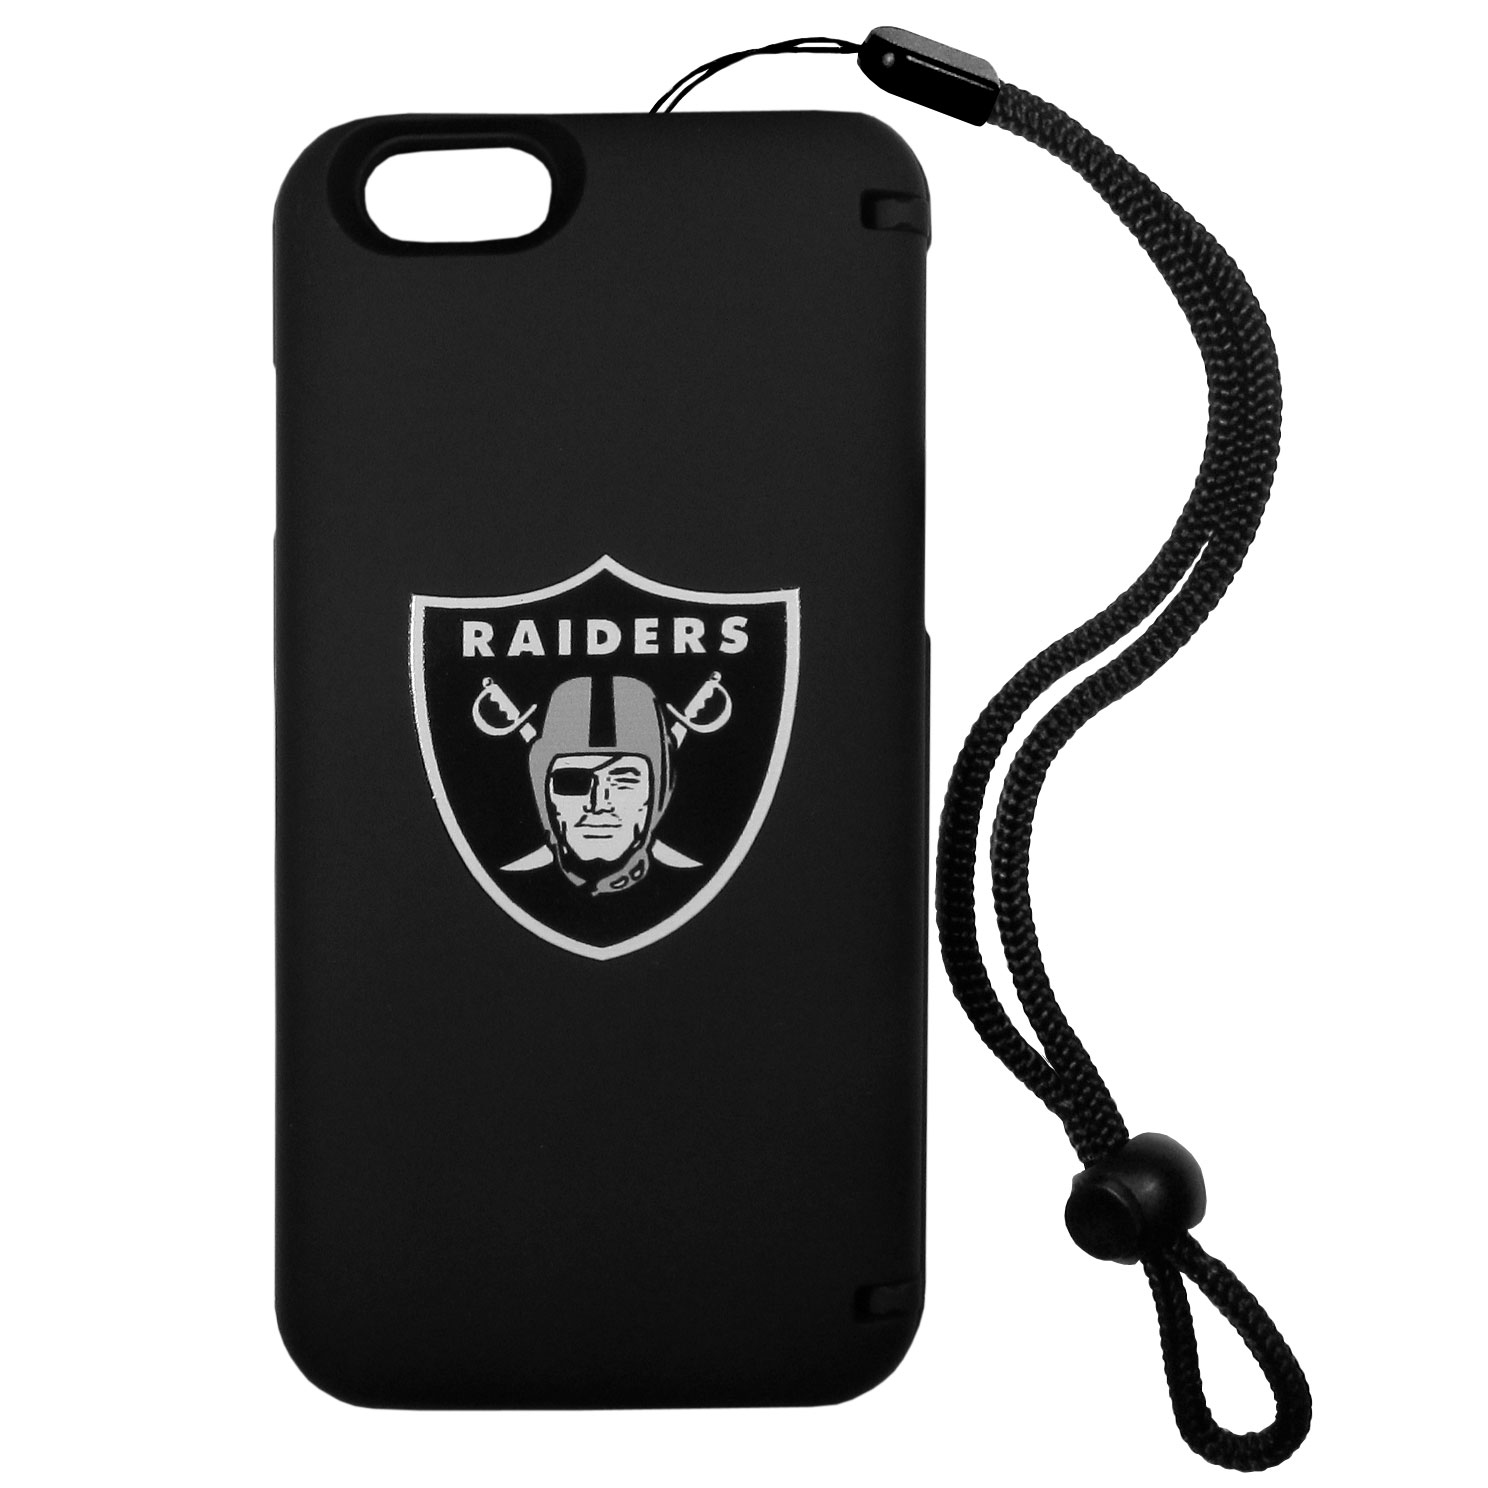 Oakland Raiders iPhone 6 Everything Case - This case really does have everything but the kitchen sink! The hidden compartment lets you keep your cards, money and tickets to the big game safe and secure and has a compact mirror so you can make sure your game face is ready to go. It also comes with a kickstand to make chatting and watching videos a breeze. The wrist strap allows you to travel with ease with your everything case. If that's not enough, it also comes with the Oakland Raiders logo printed in expert detail on the front.